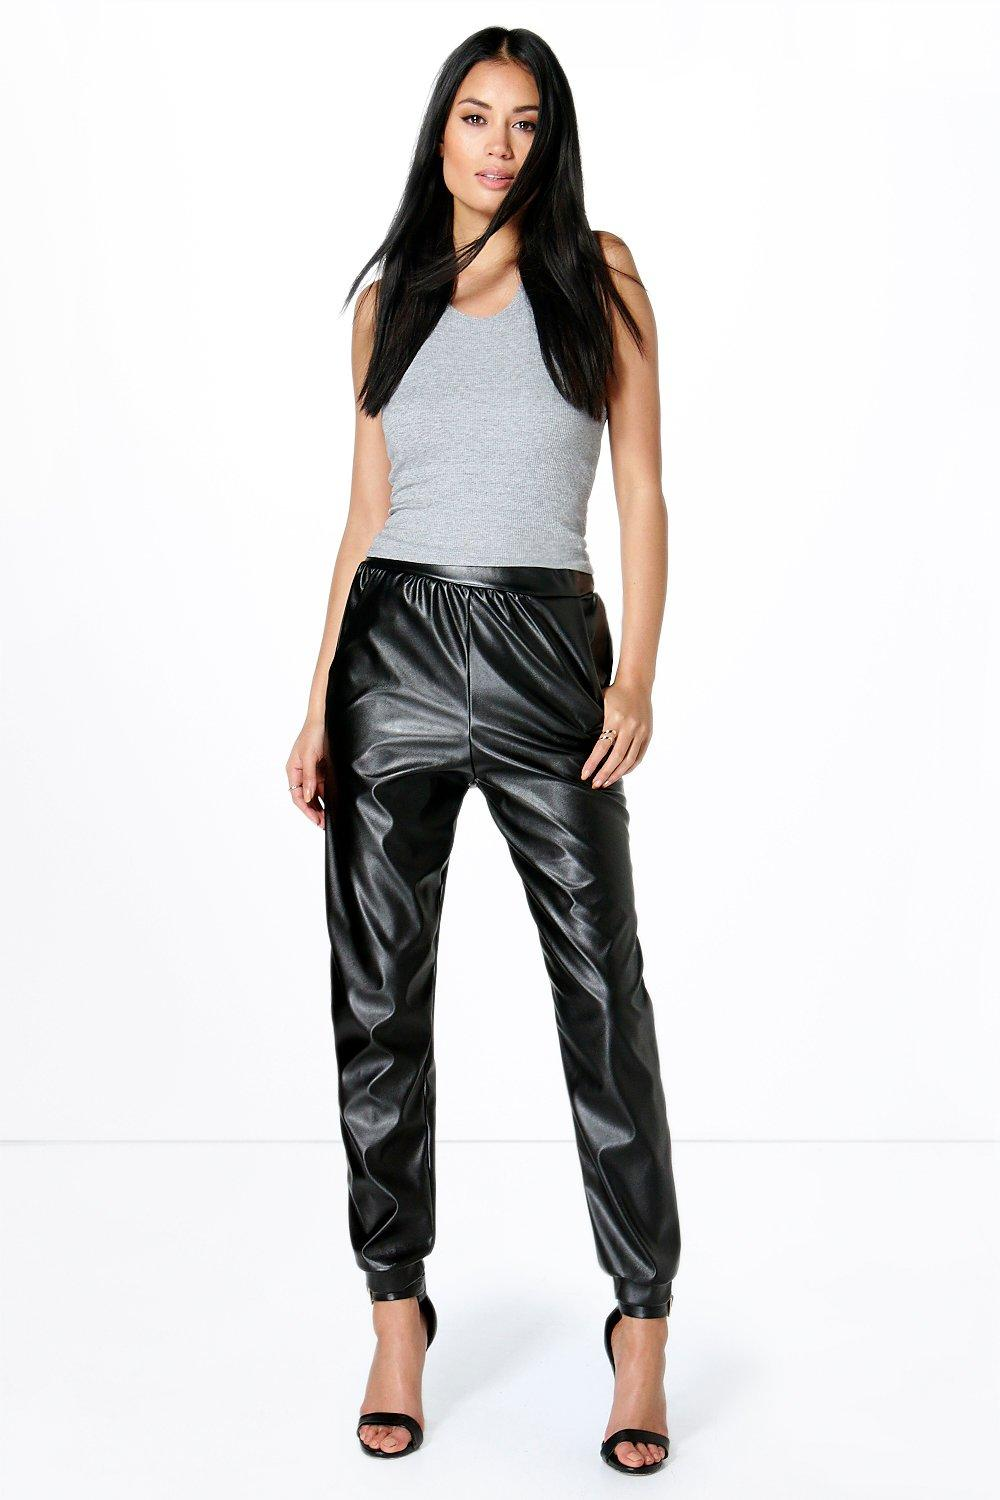 Keeva Leather Look Cuffed Luxe Jogger